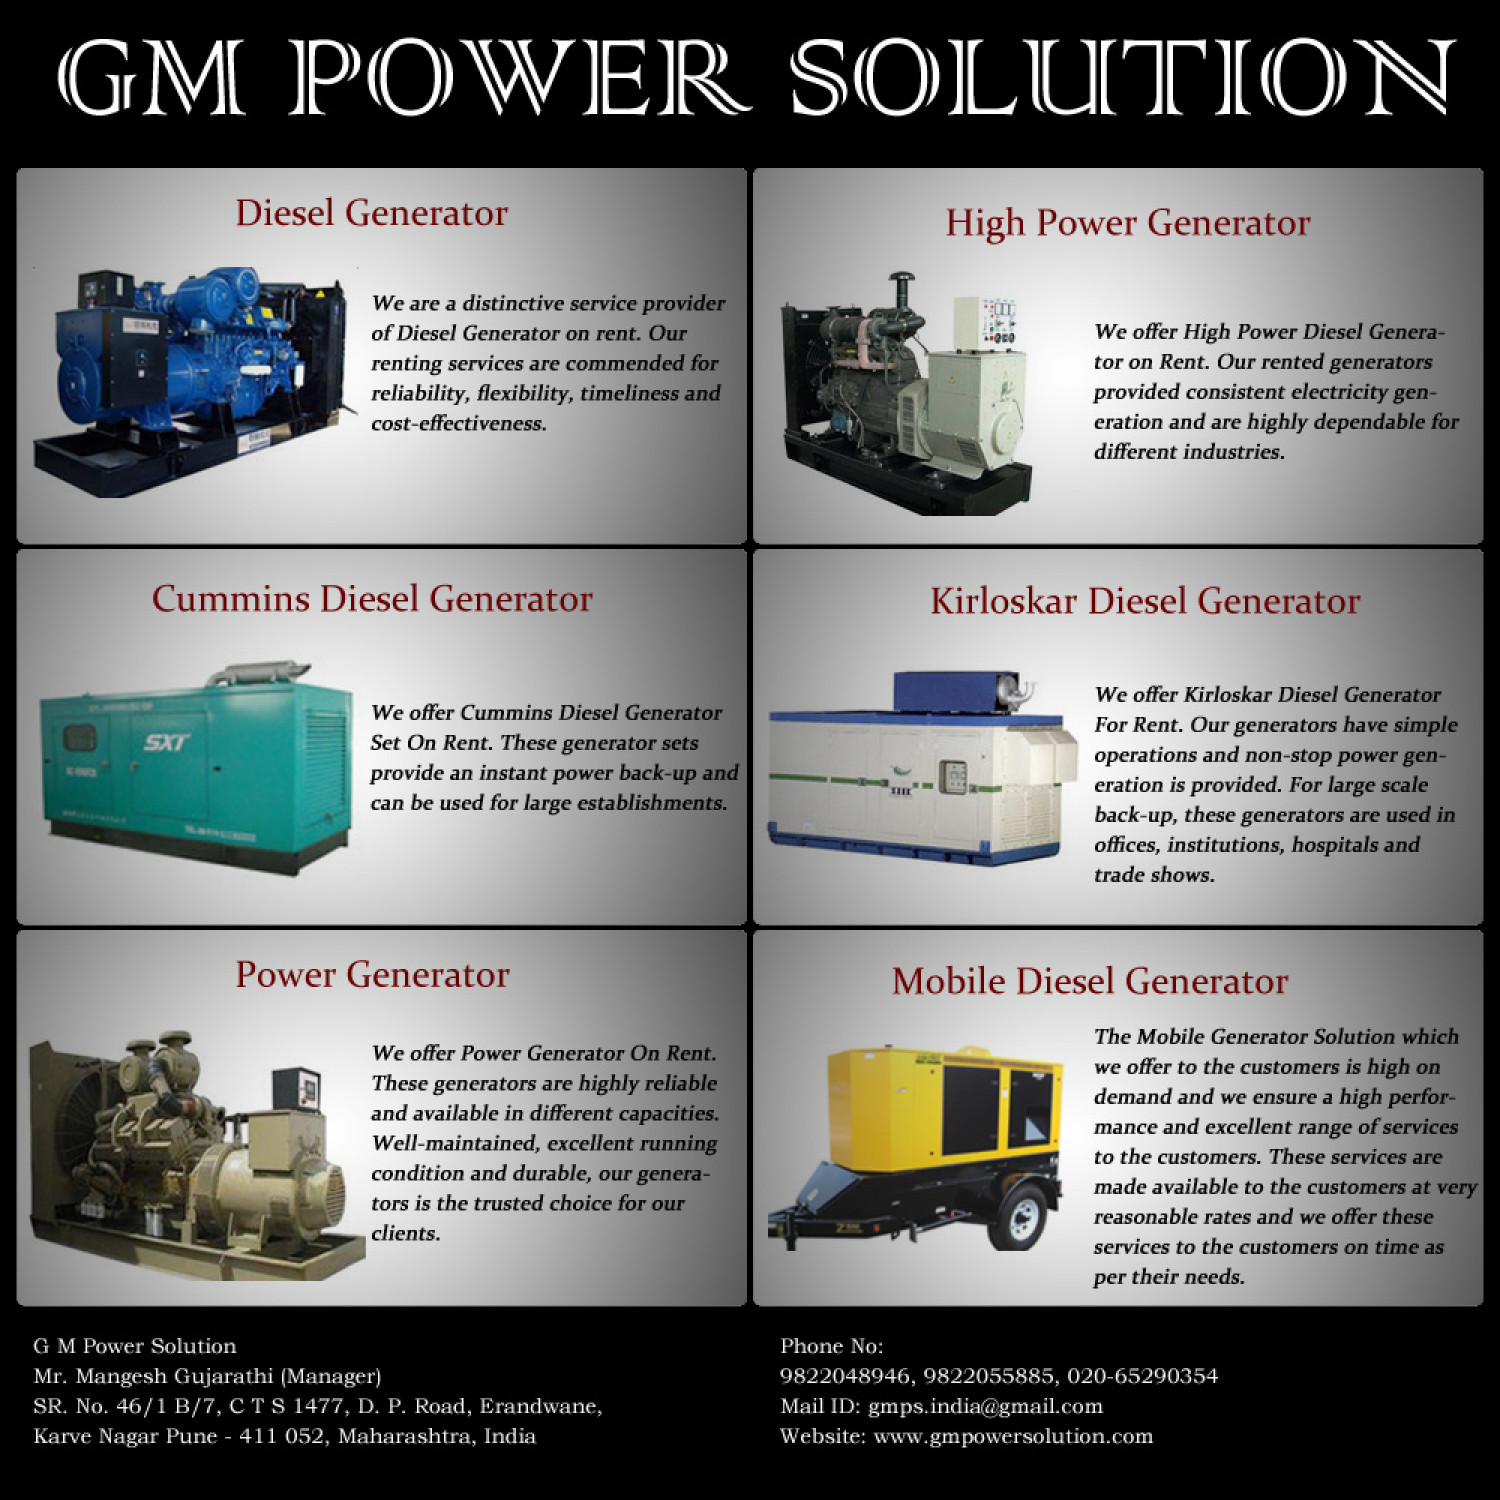 Diesel Generator Rental Services Pune, Maharashtra Infographic